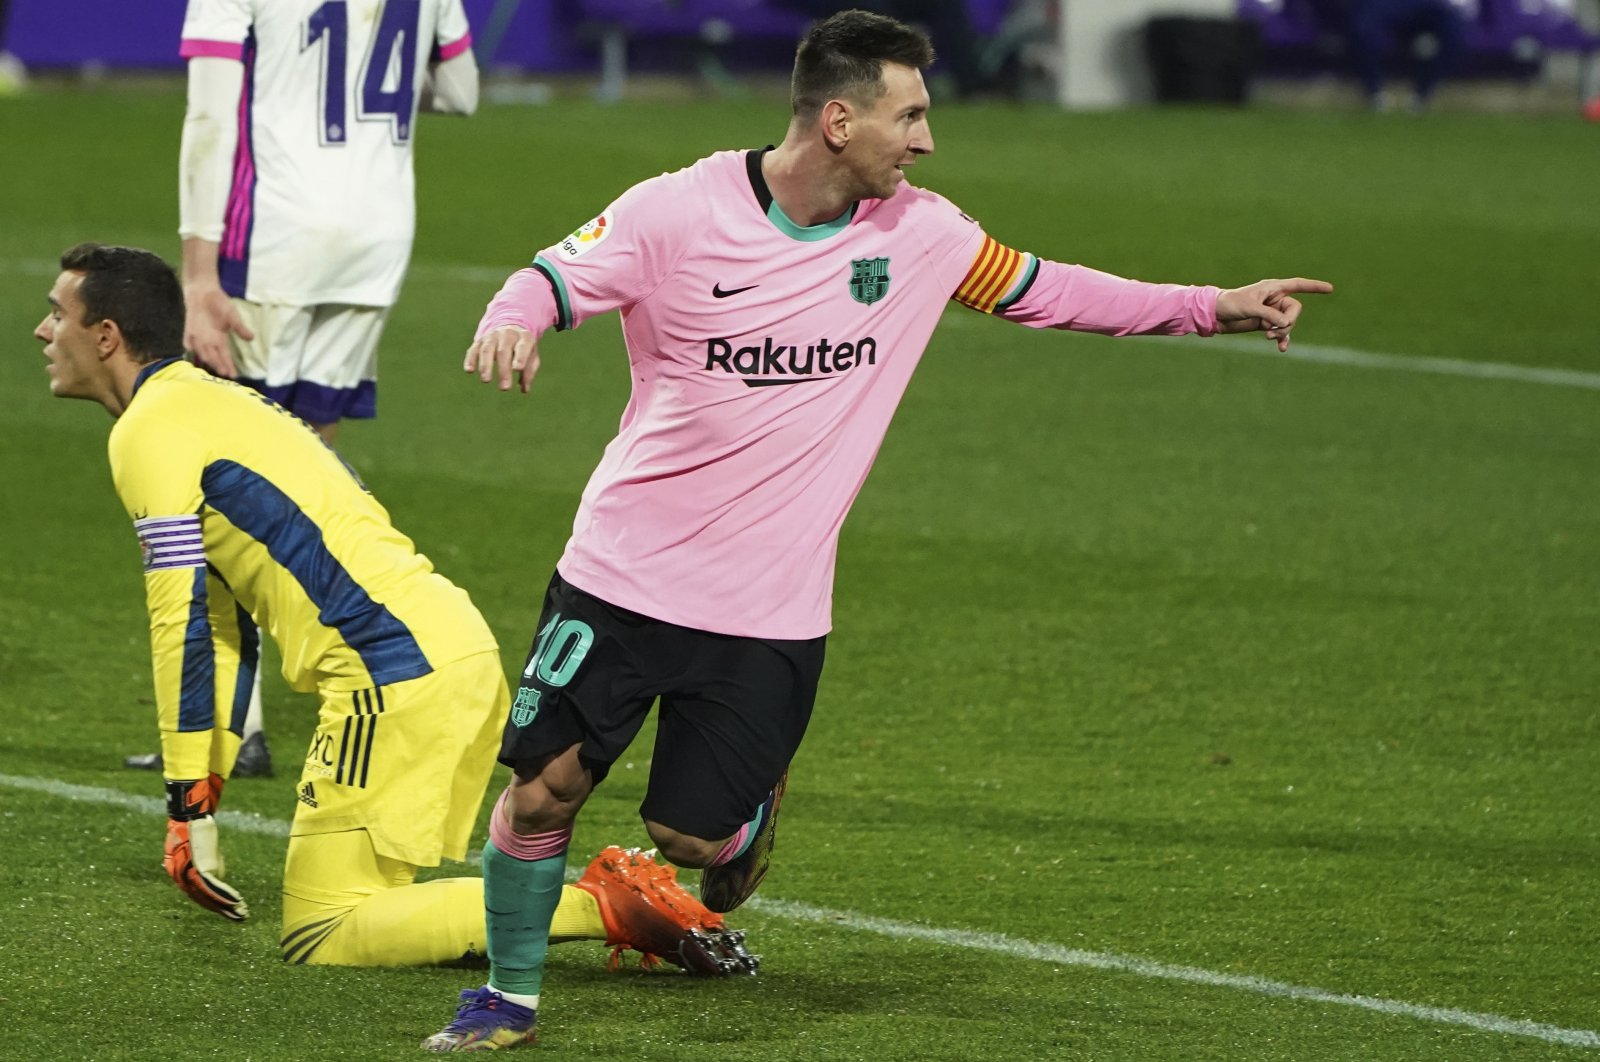 Barcelona's Lionel Messi celebrates a goal during a La Liga match against Valladolid at the Jose Zorrilla stadium in Valladolid, Spain, Dec. 22, 2020. (AP Photo)